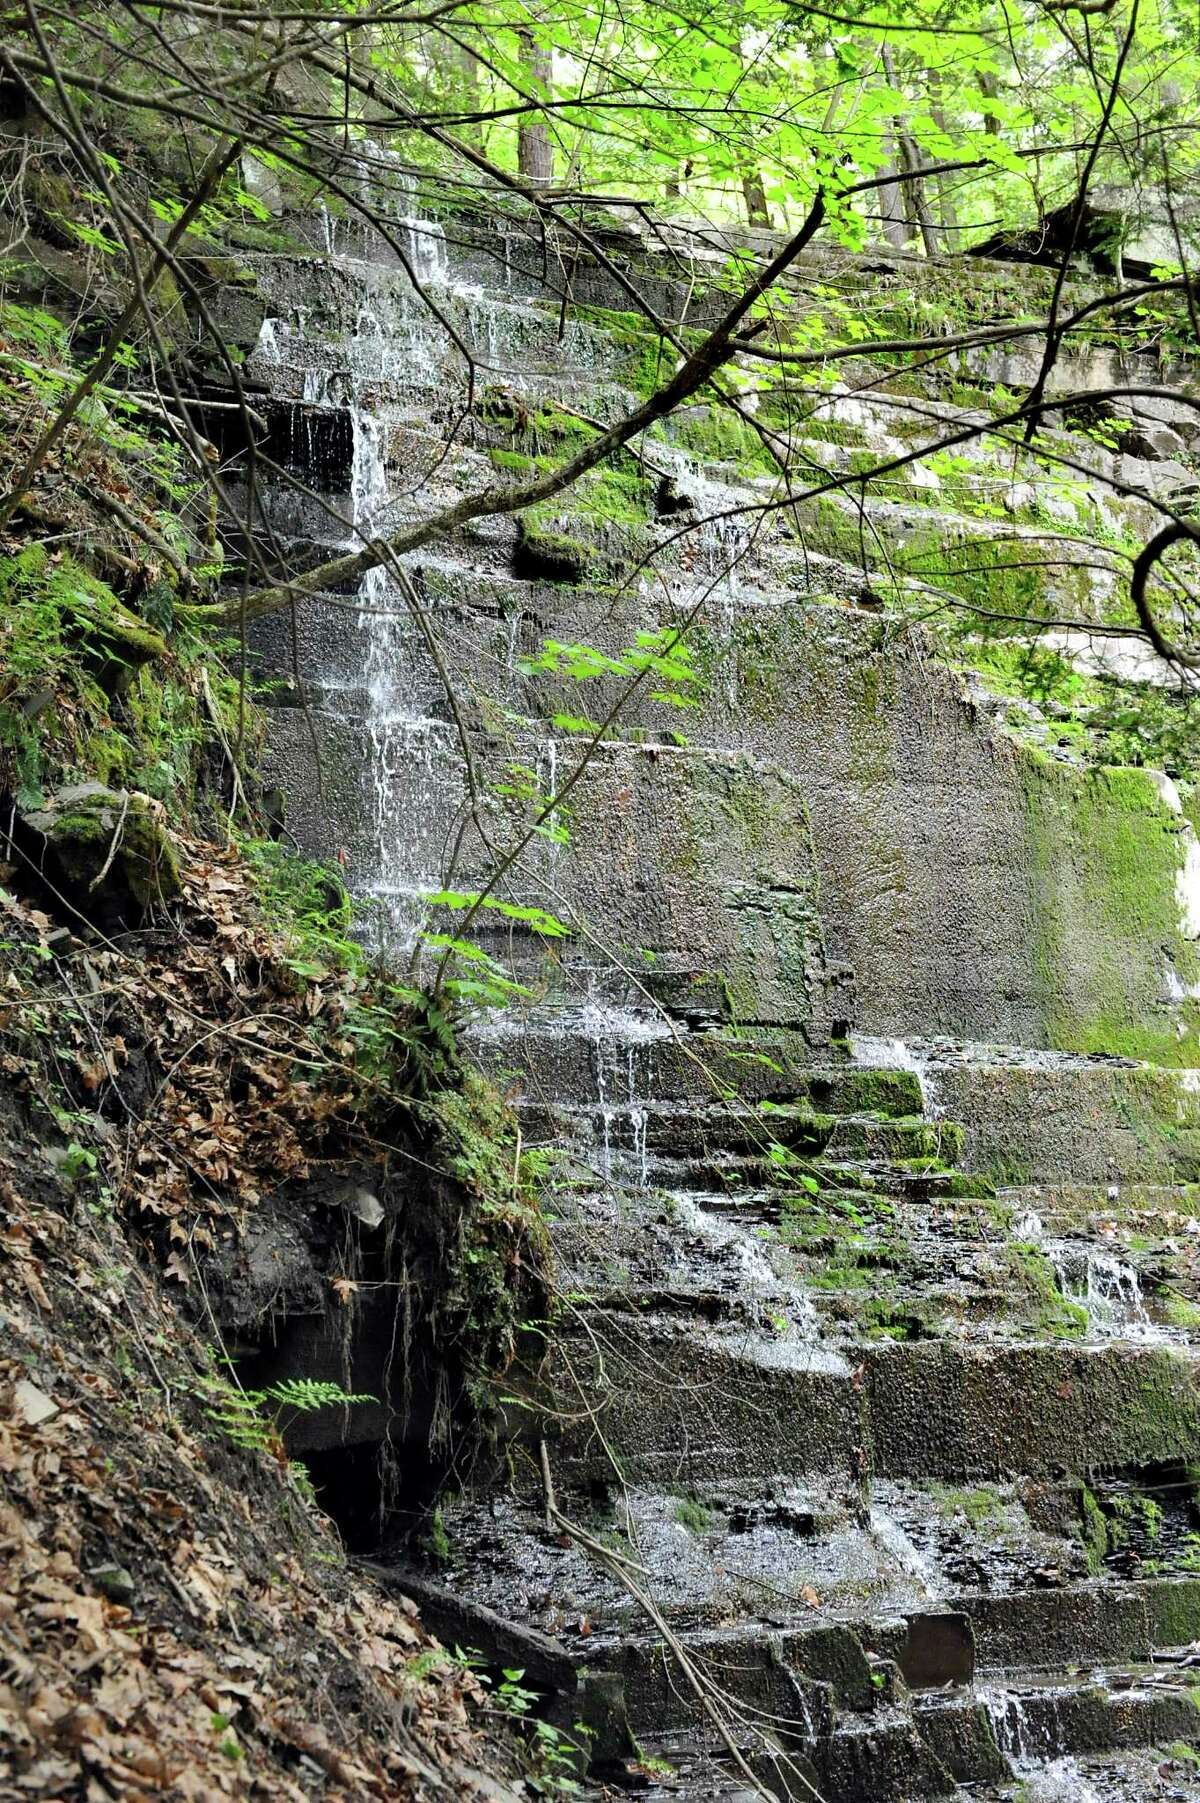 The waterfalls on Wednesday, May 13, 2015, at Plotter Kill Nature Preserve in Rotterdam, N.Y. (Cindy Schultz / Times Union)